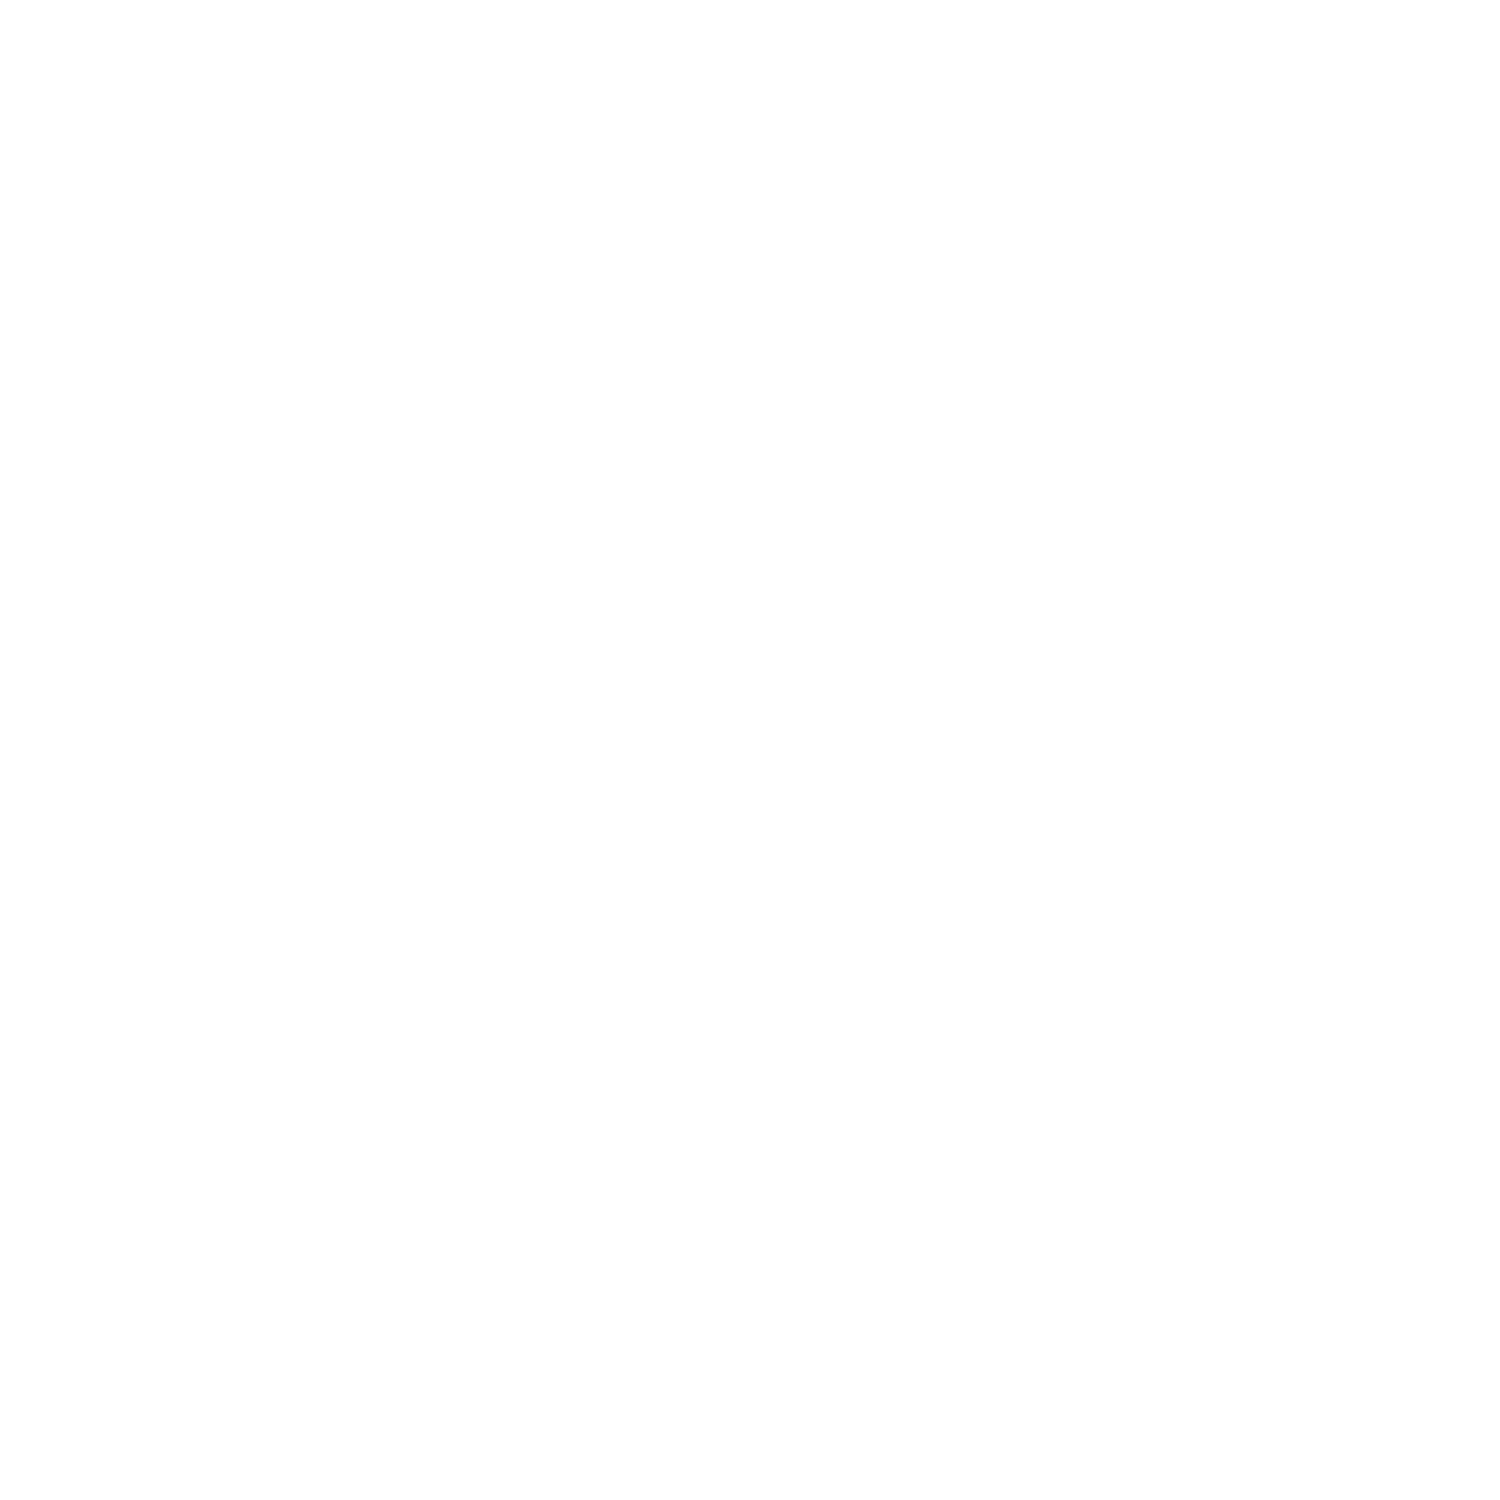 Orion Group World